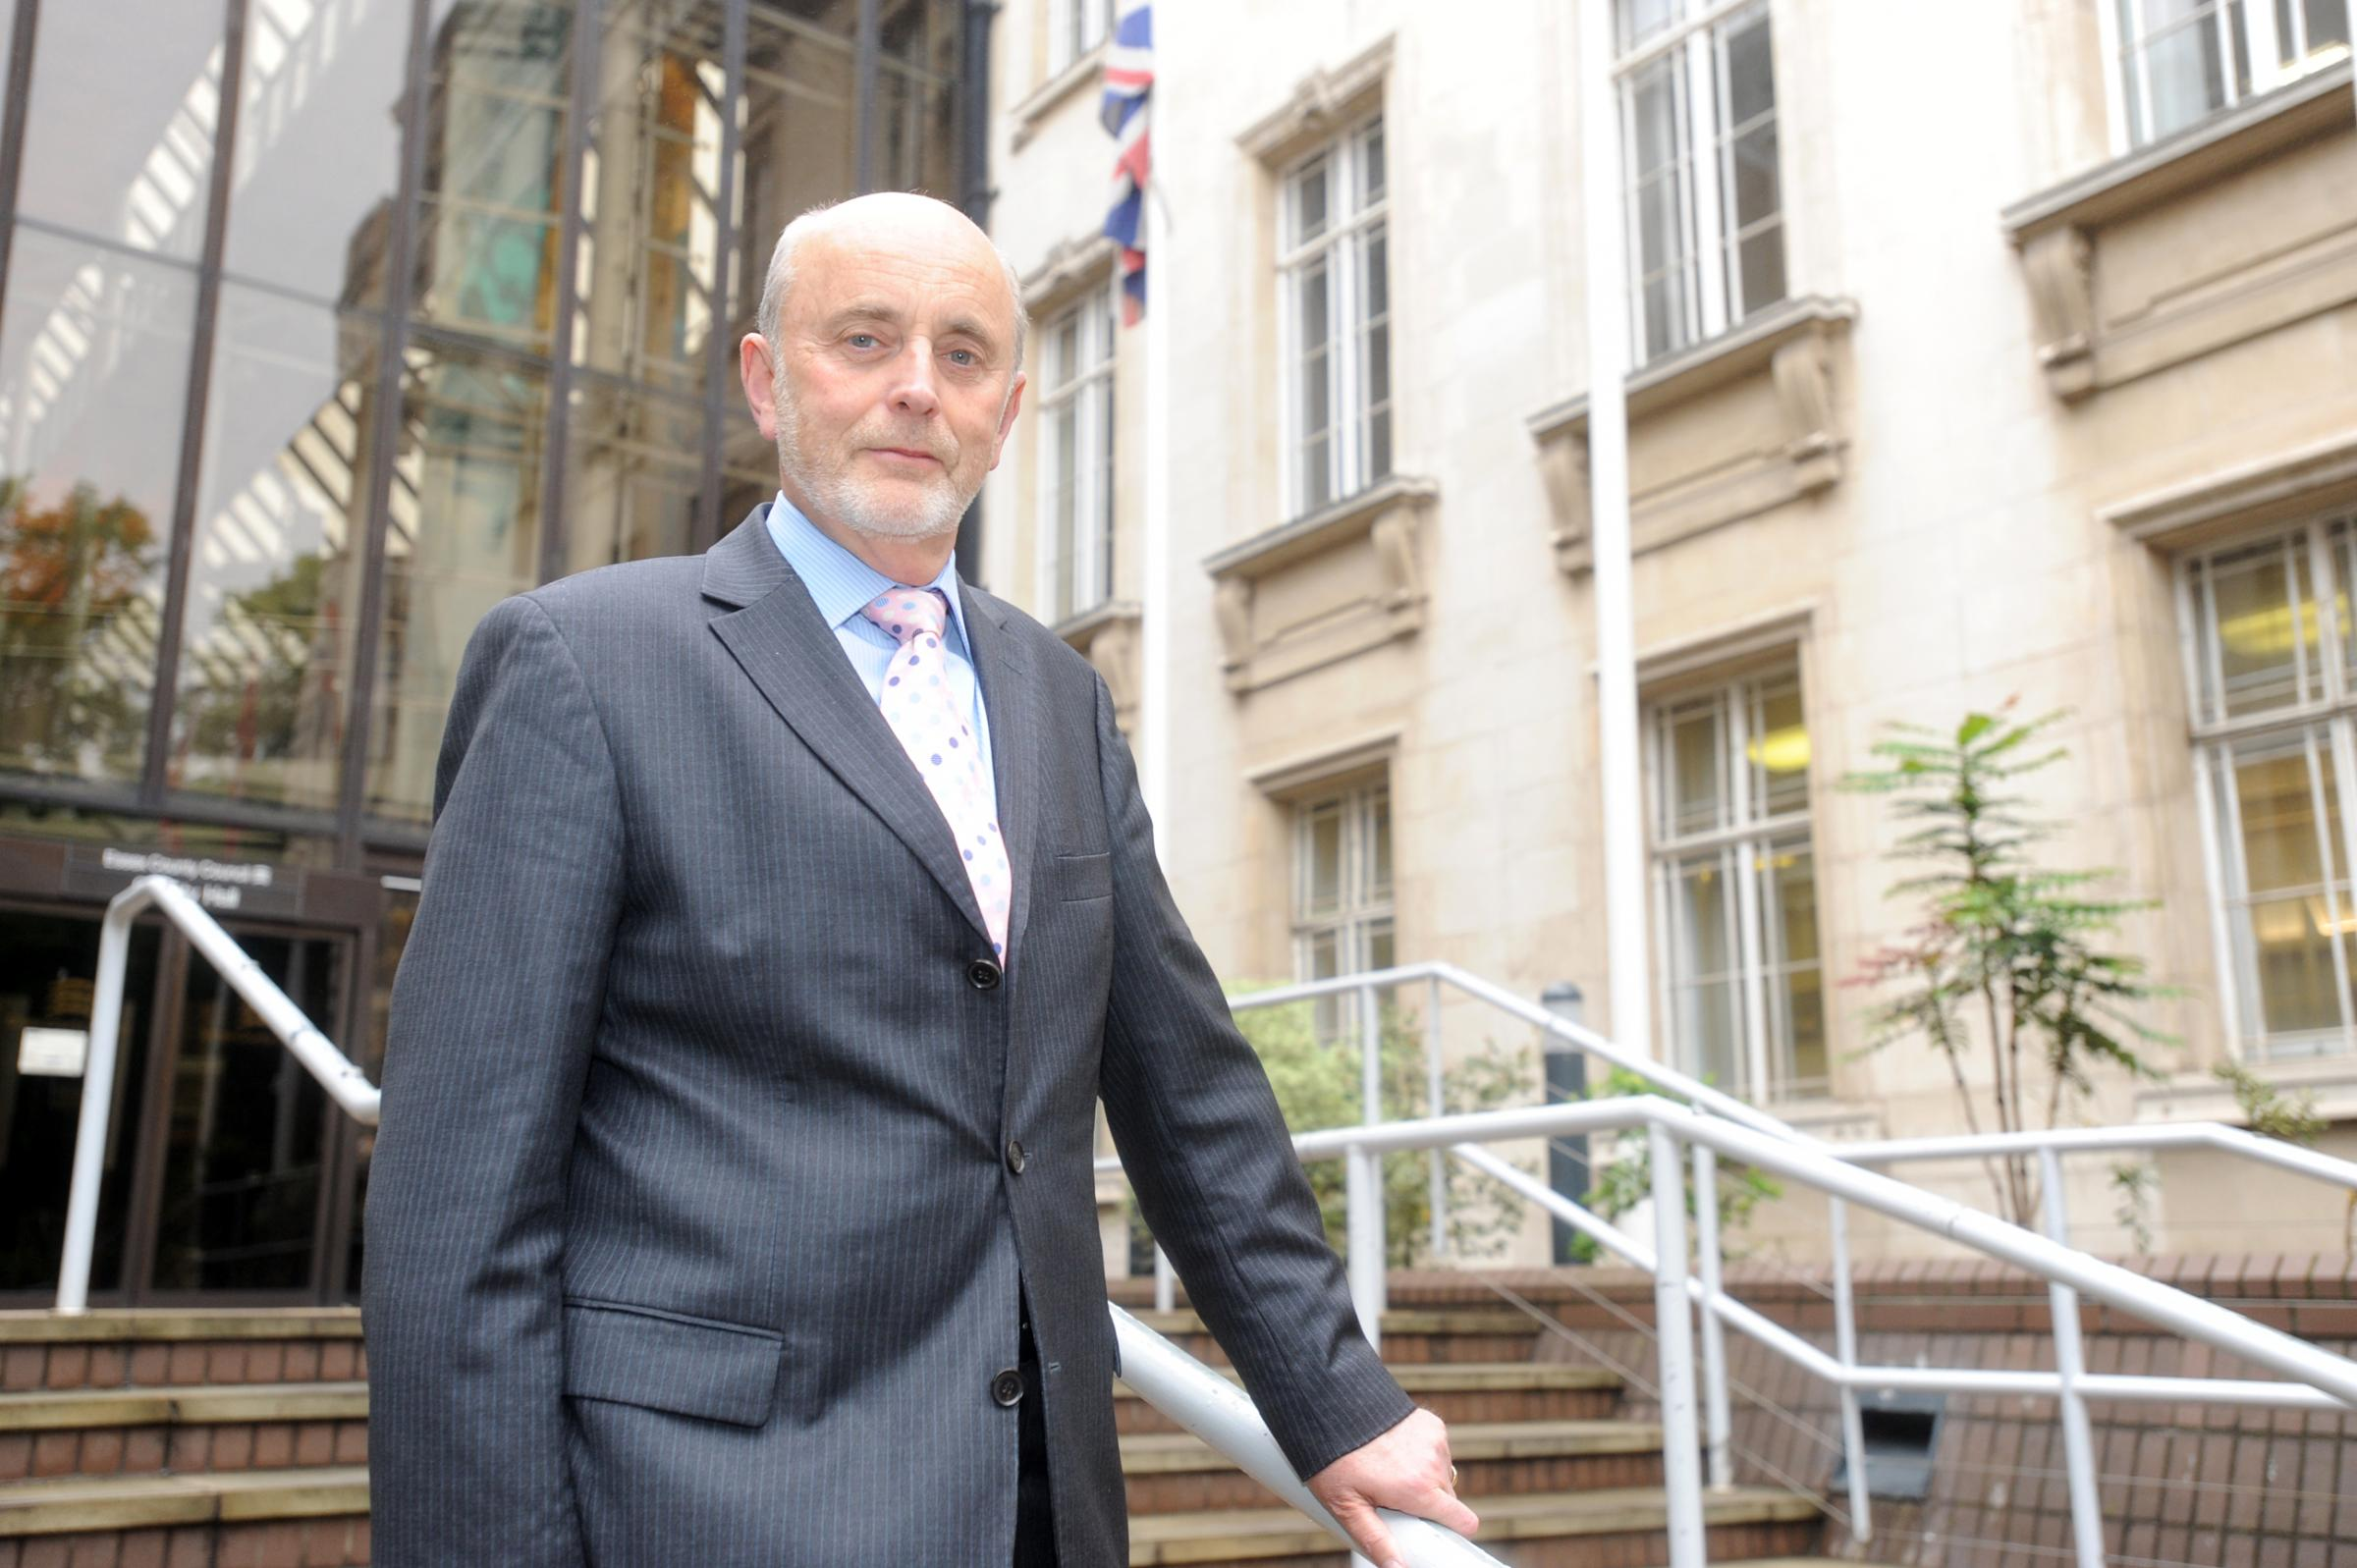 Thrilled: Council education boss Ray Gooding